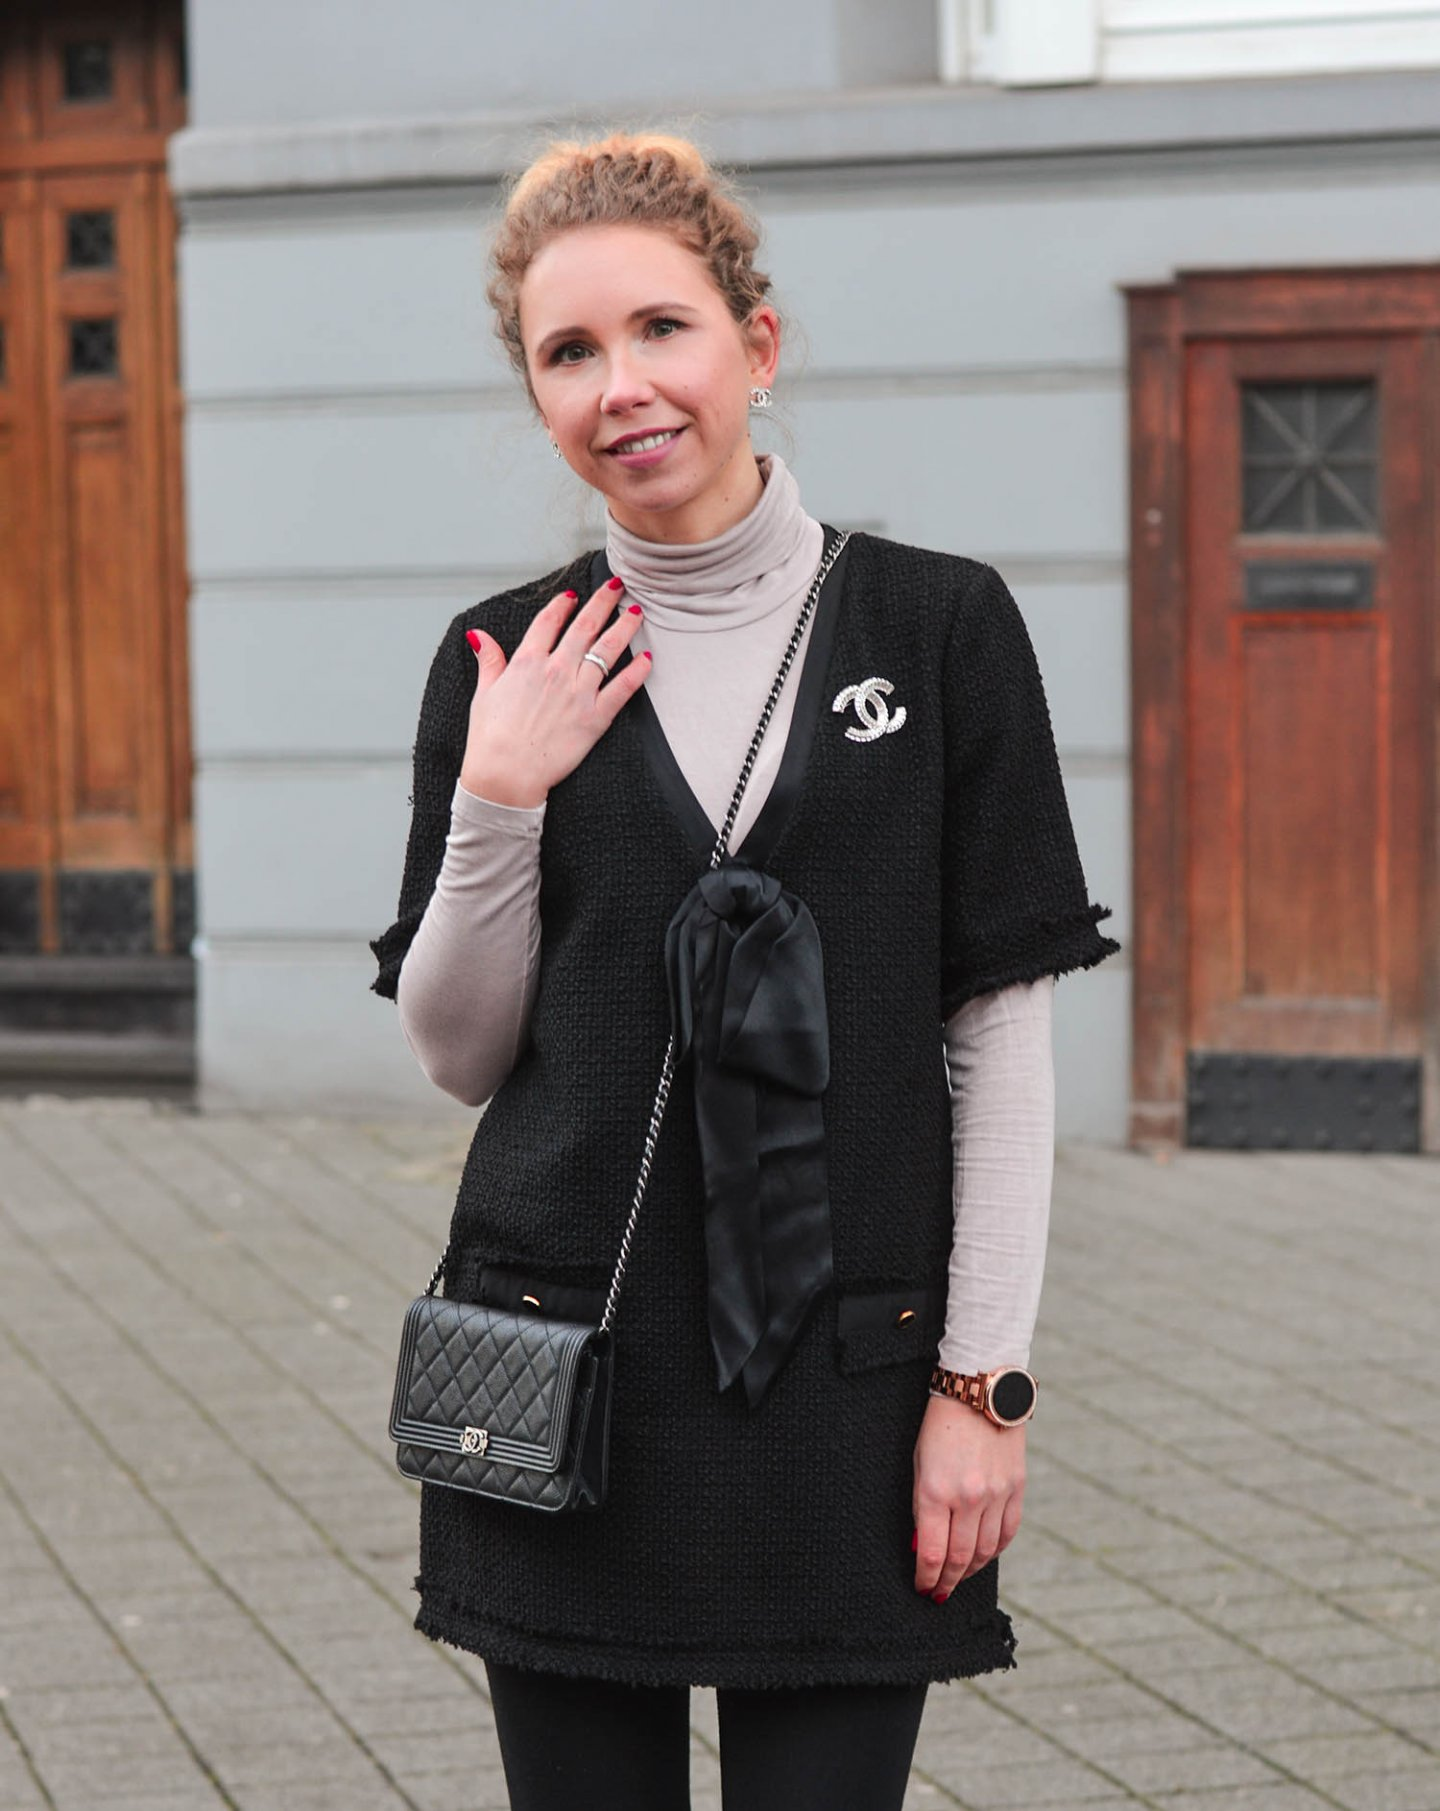 Tweed-Dress-Zara-Chanel-Accessoires-Kationette-Fashionblog-Germany